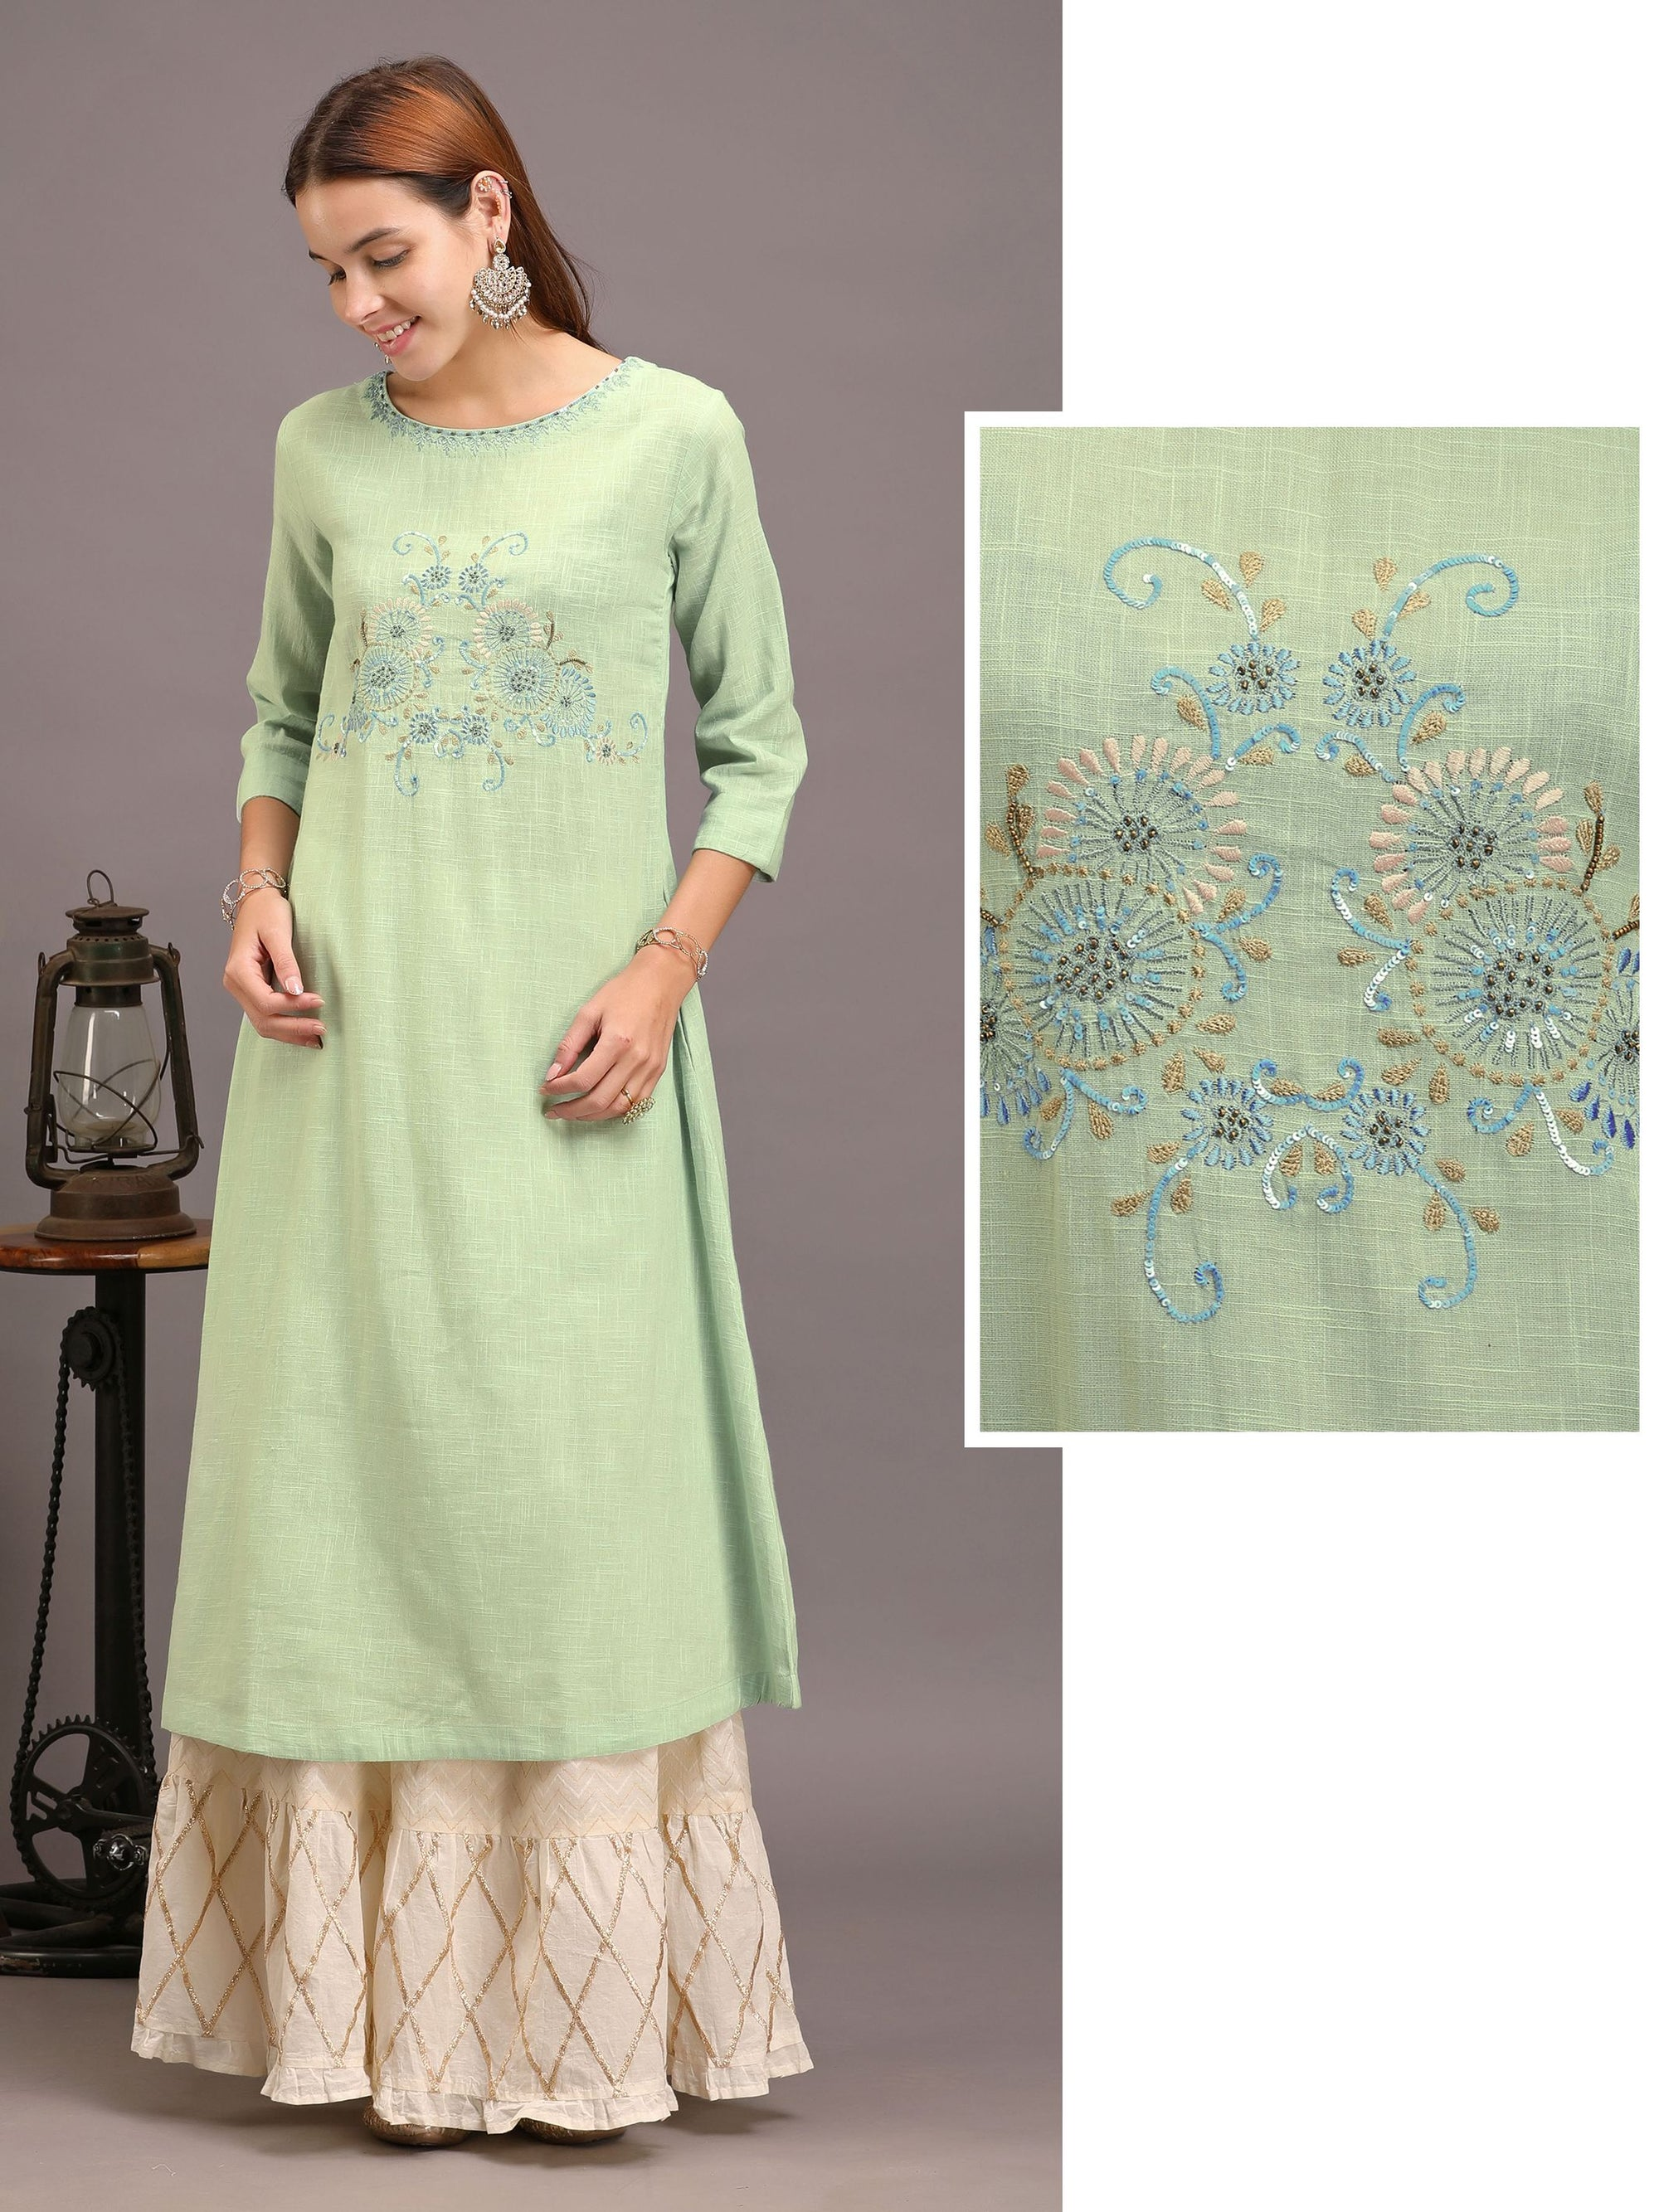 Daisy Floral Embroidered Handloom Cotton Kurti – Blue